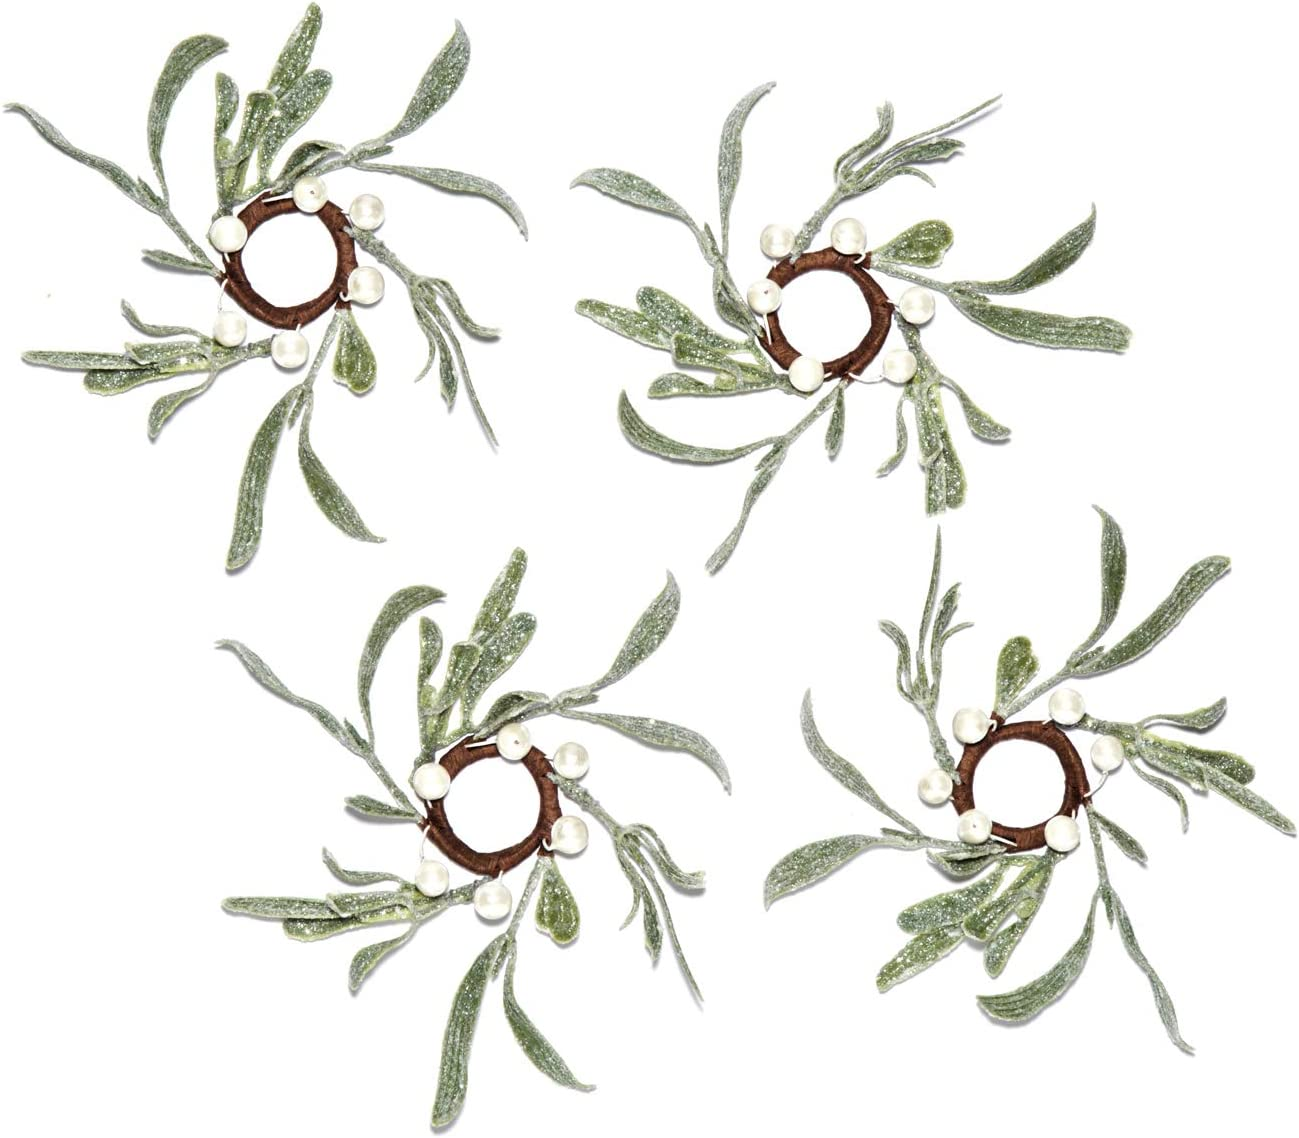 Lamb's Ear Taper Candle Rings - Set of 4, Mistletoe Mini Wreaths with Pearl Accents, for Easter and Spring Home Decor